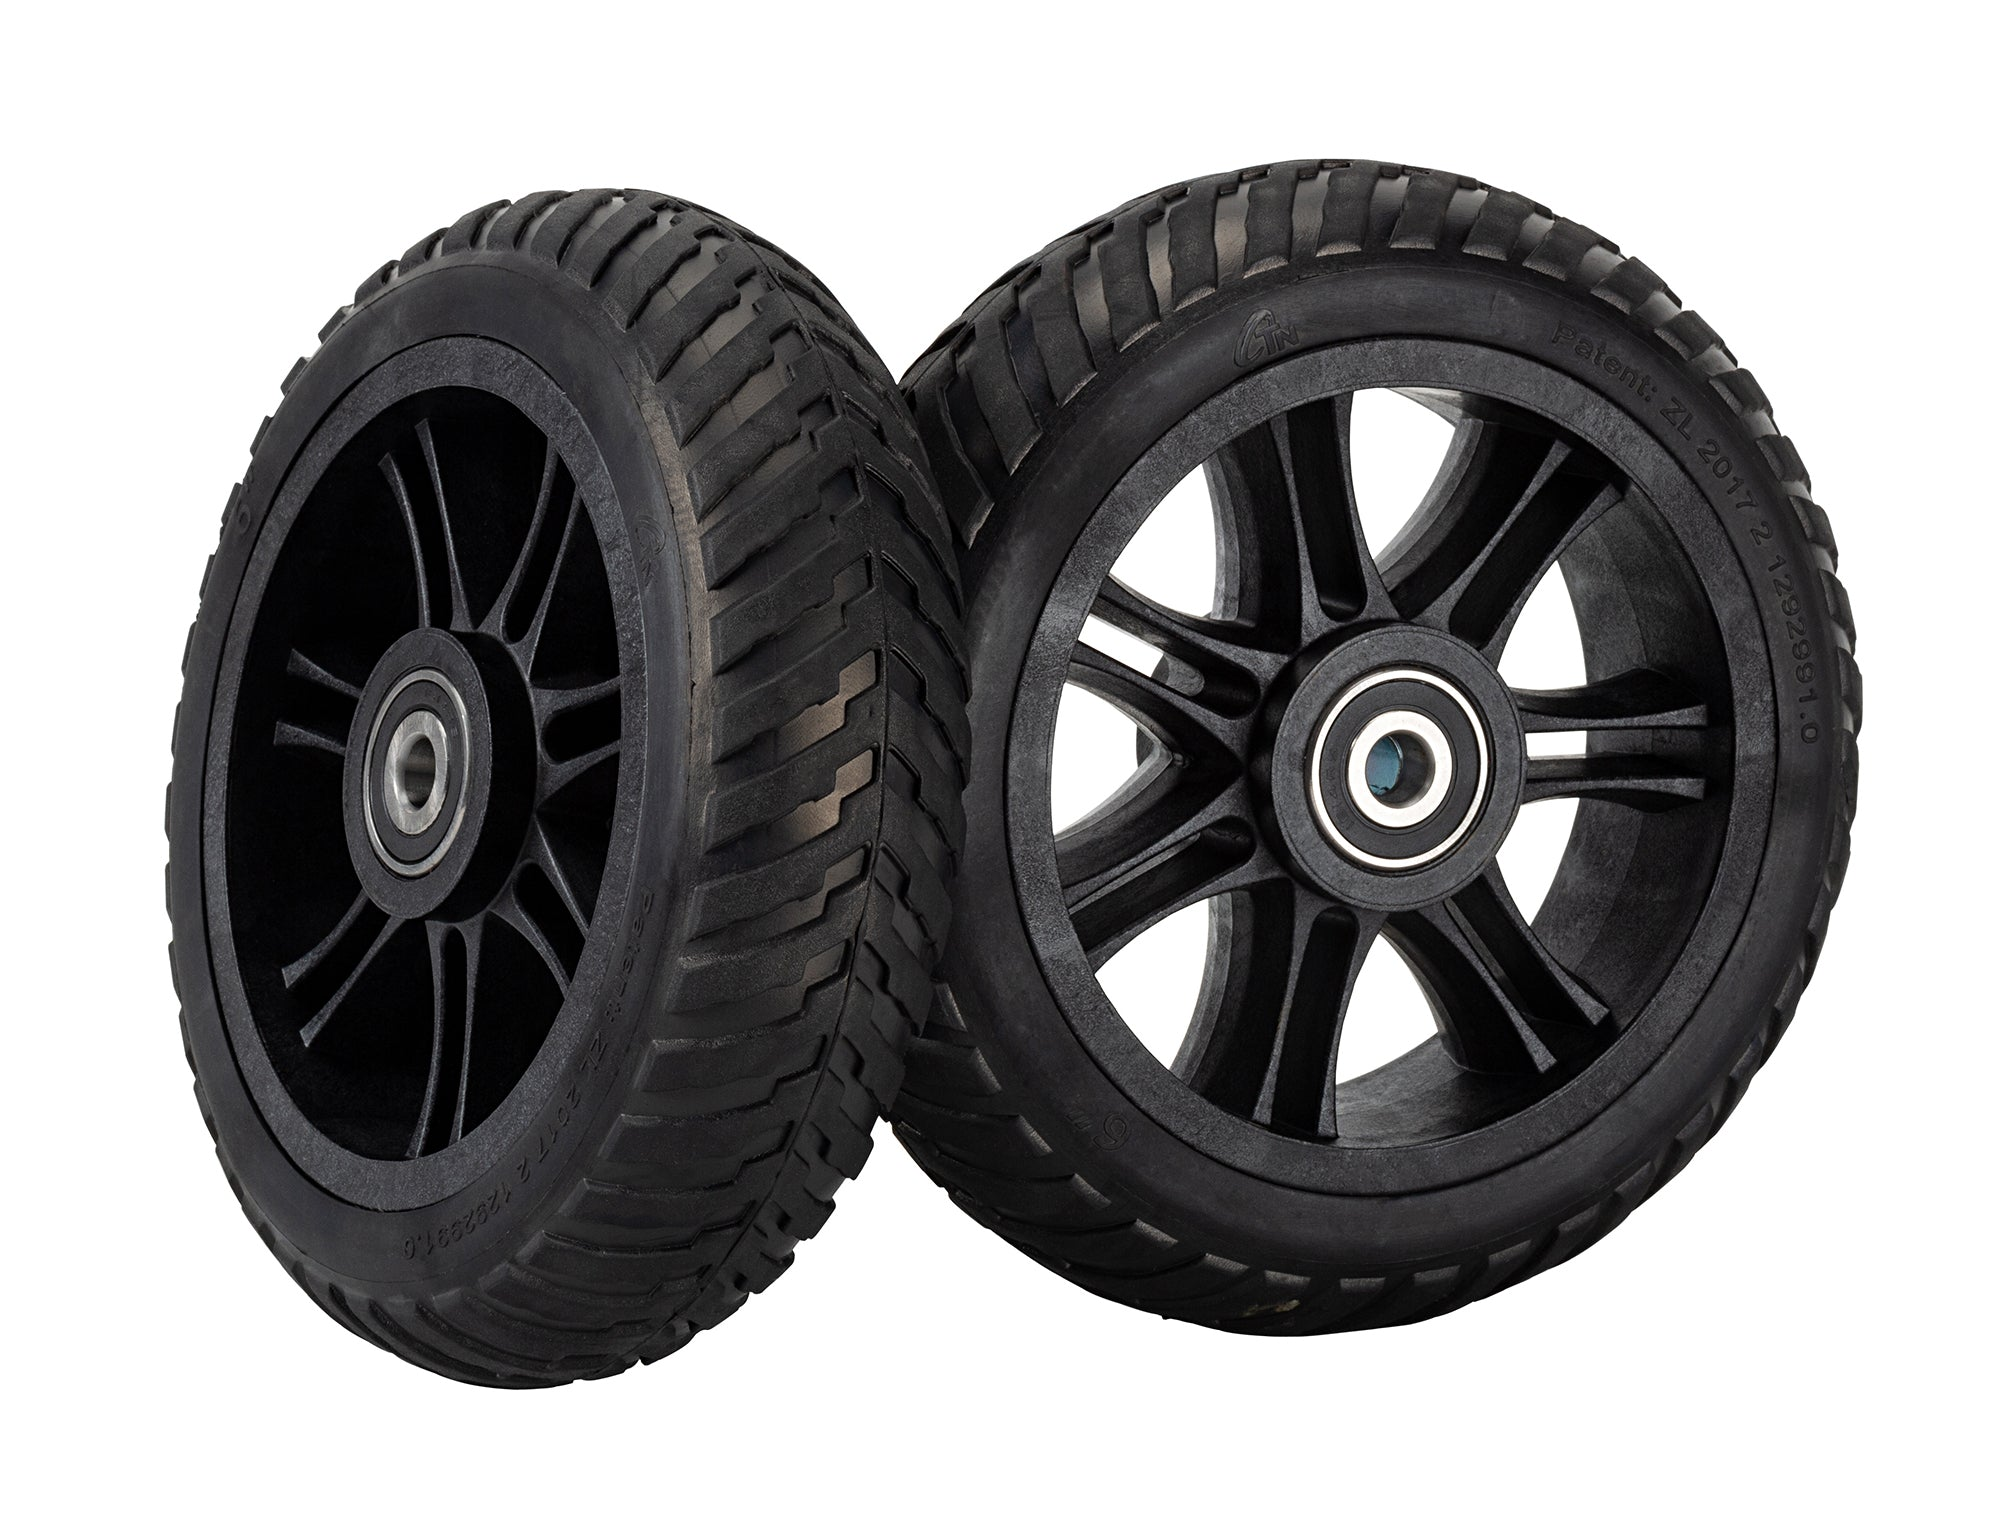 Aireless Rubber Tires